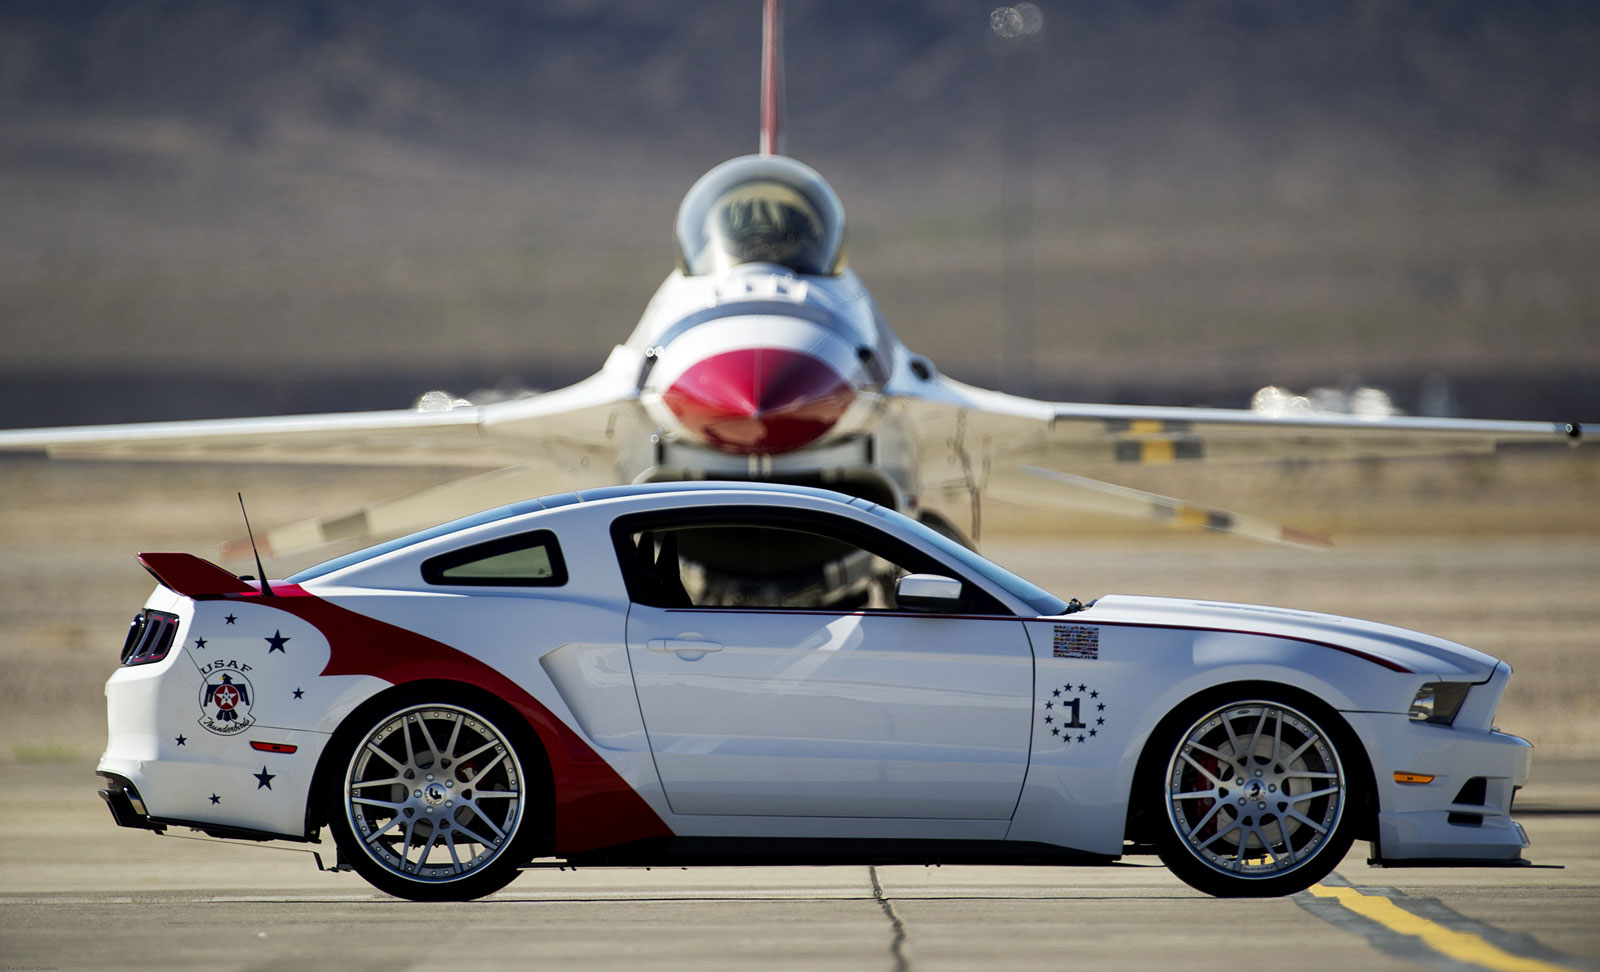 U S Air Force Thunderbirds Edition Mustang Sells For 398k